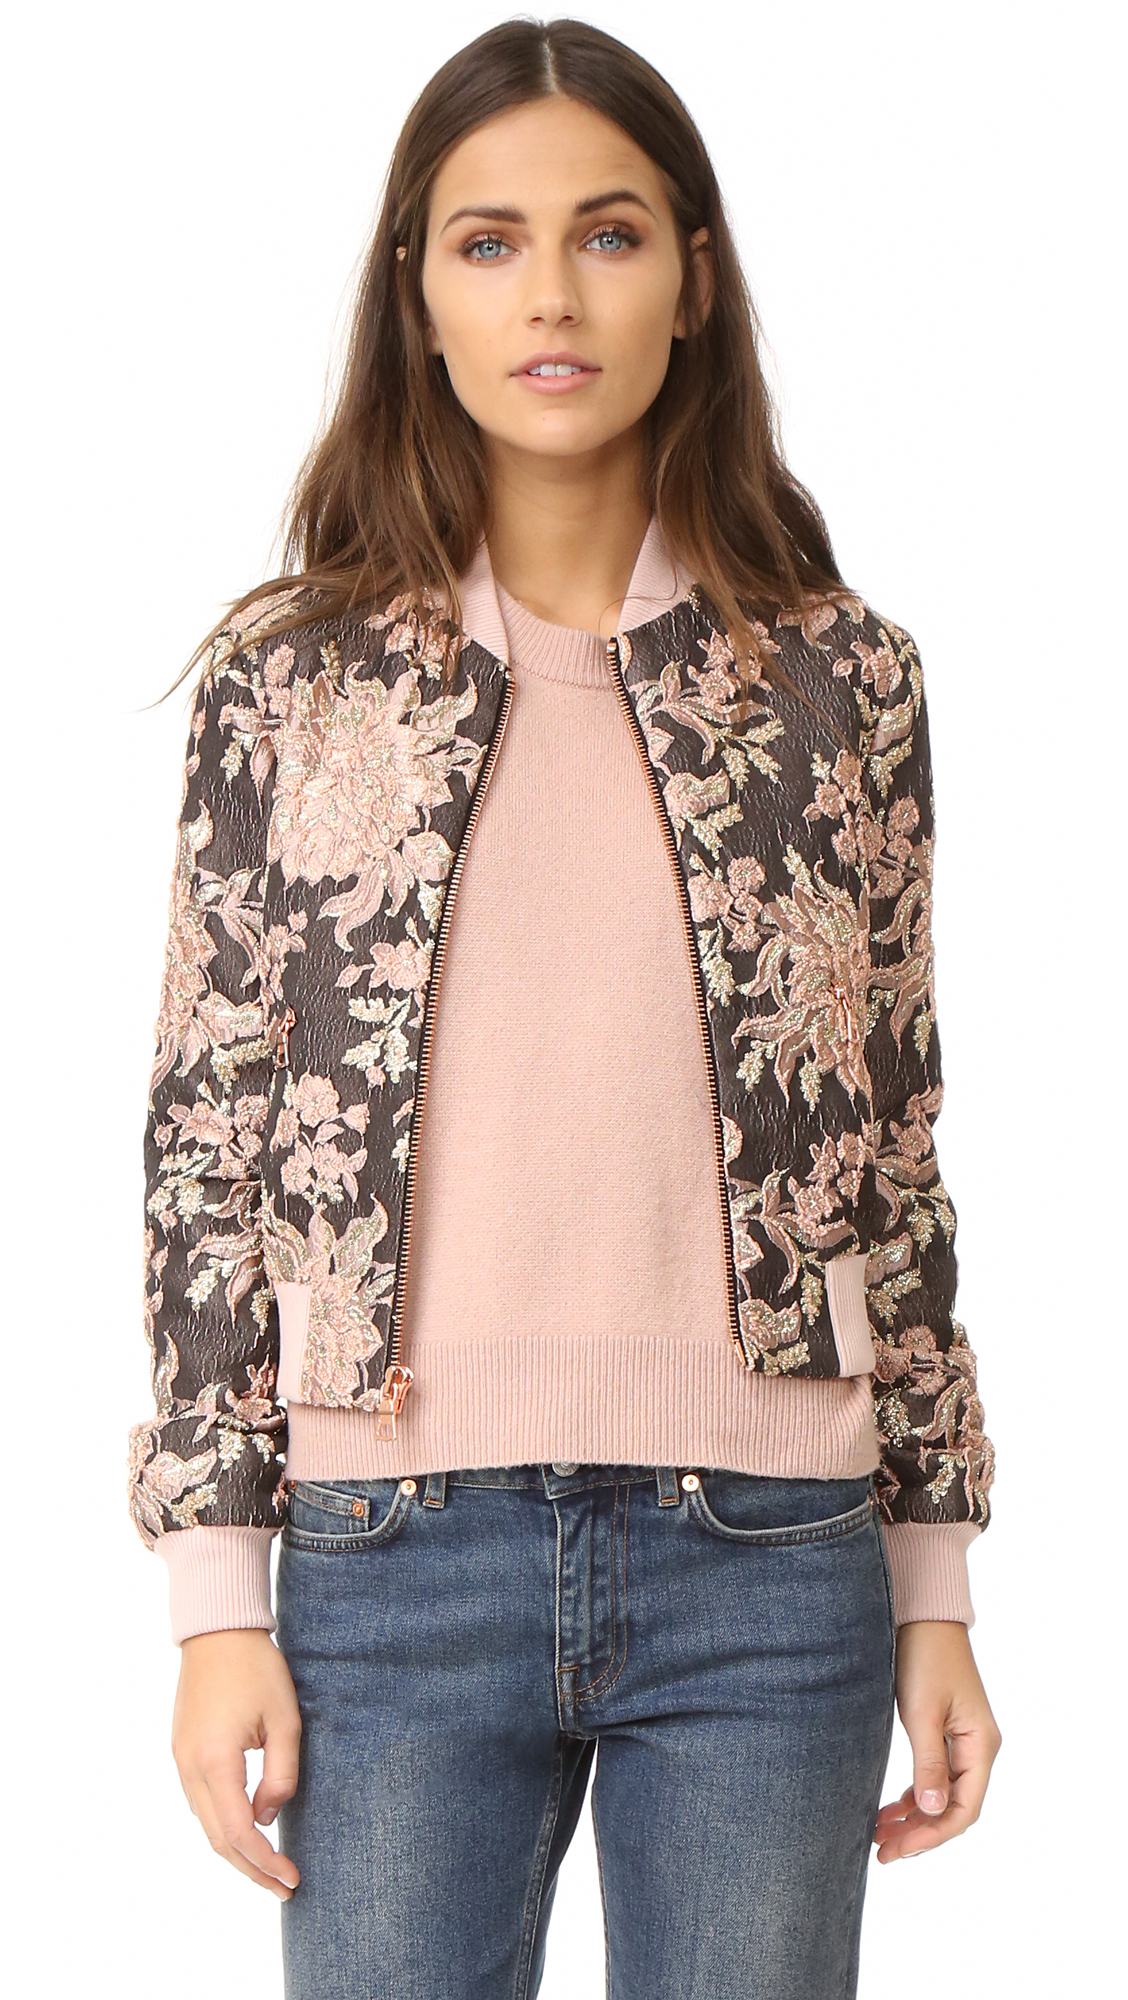 Alice + Olivia Lonnie Cropped Bomber Jacket - Dusty Rose Multi at Shopbop